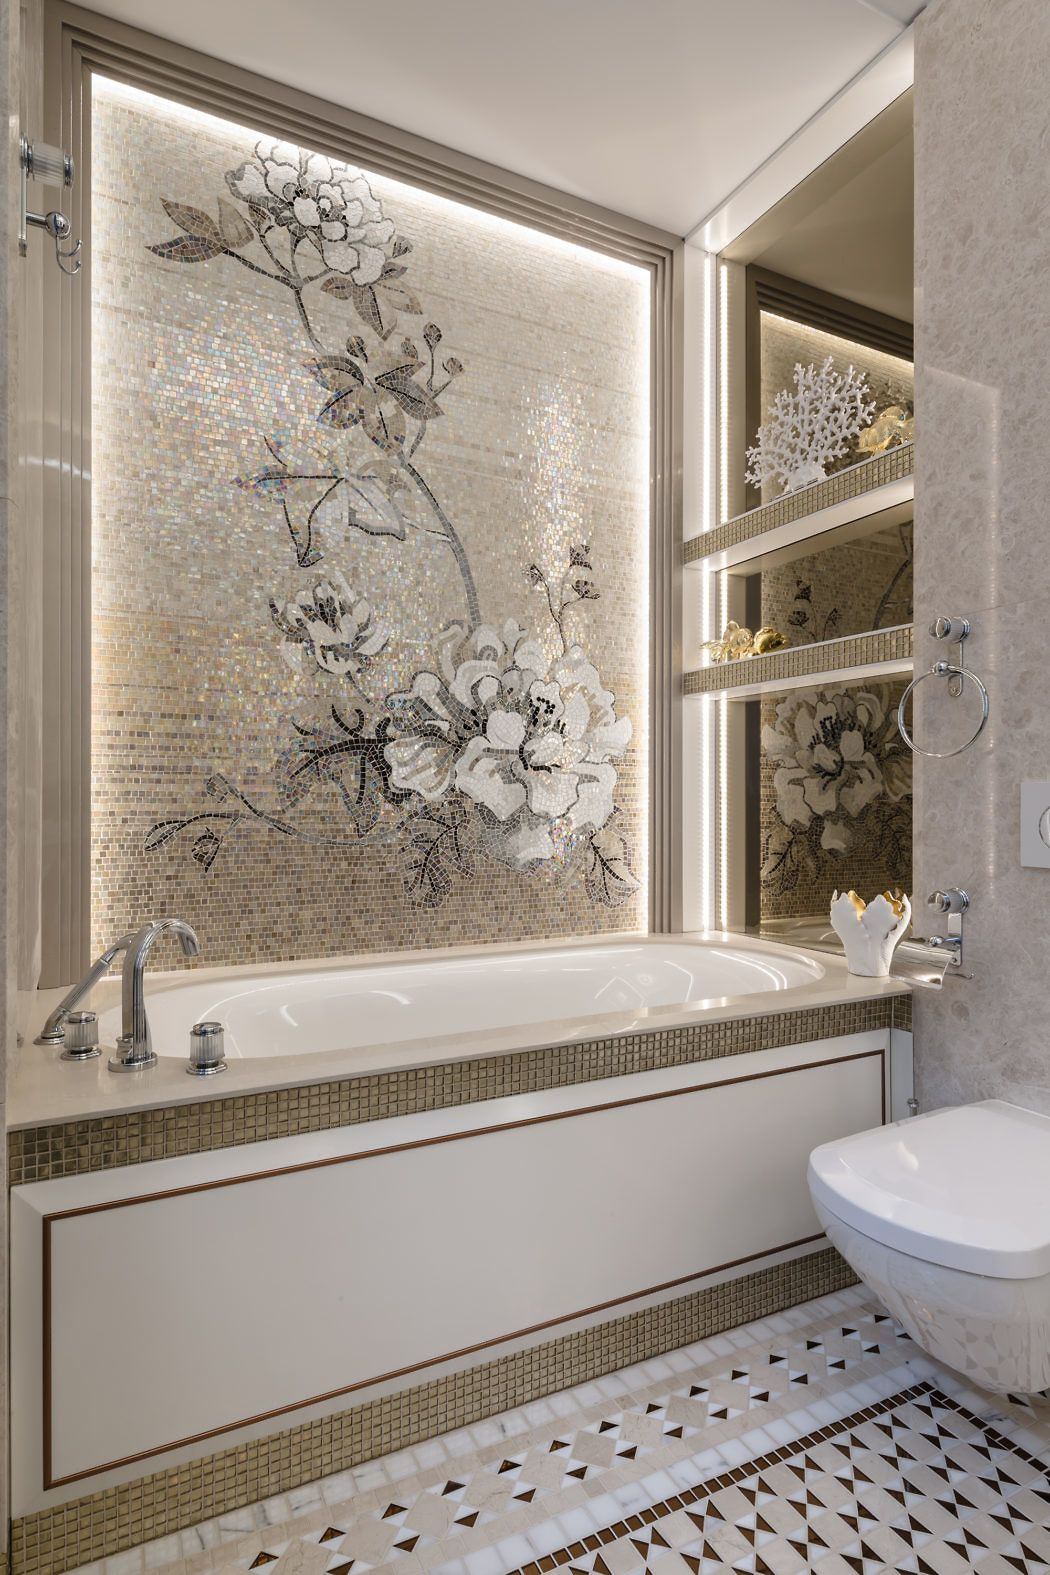 Enhance Your Senses With Luxury Home Decor In 2020 Luxury House